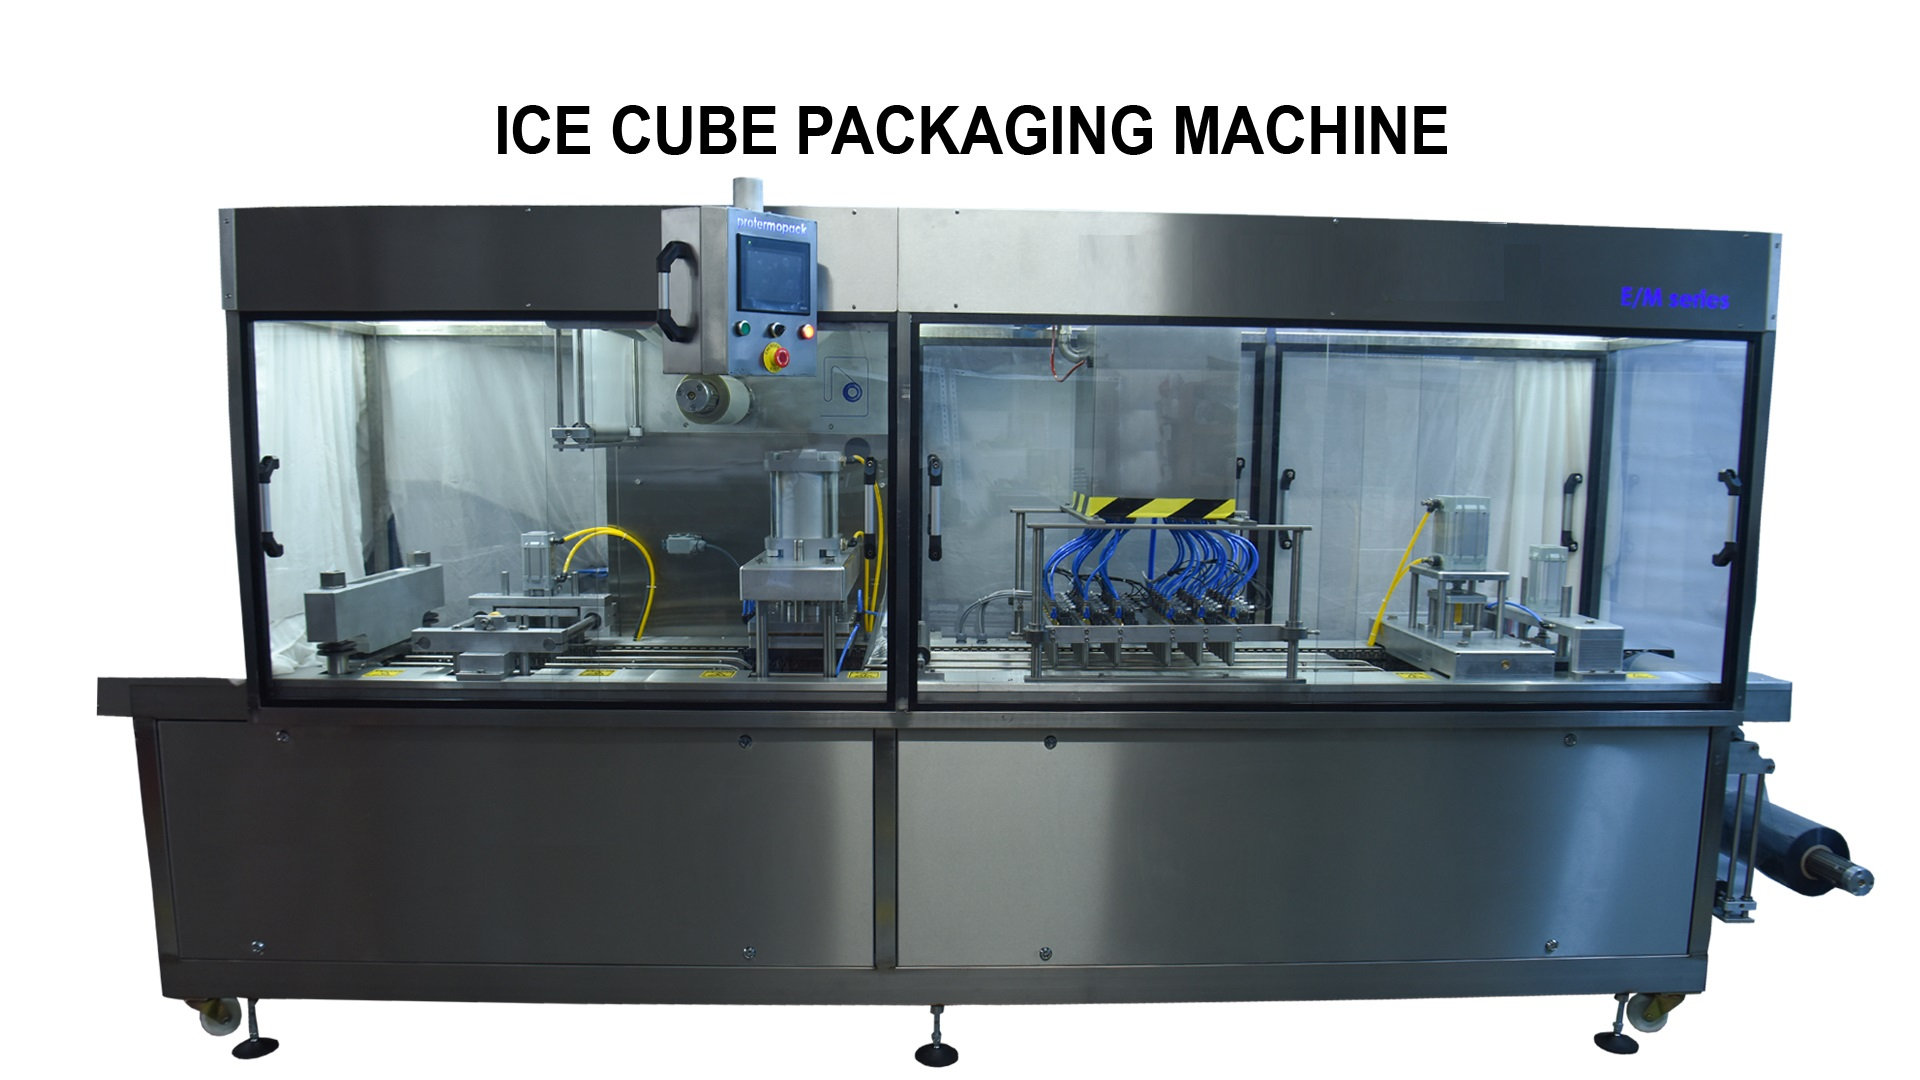 Ice cube packaging machine